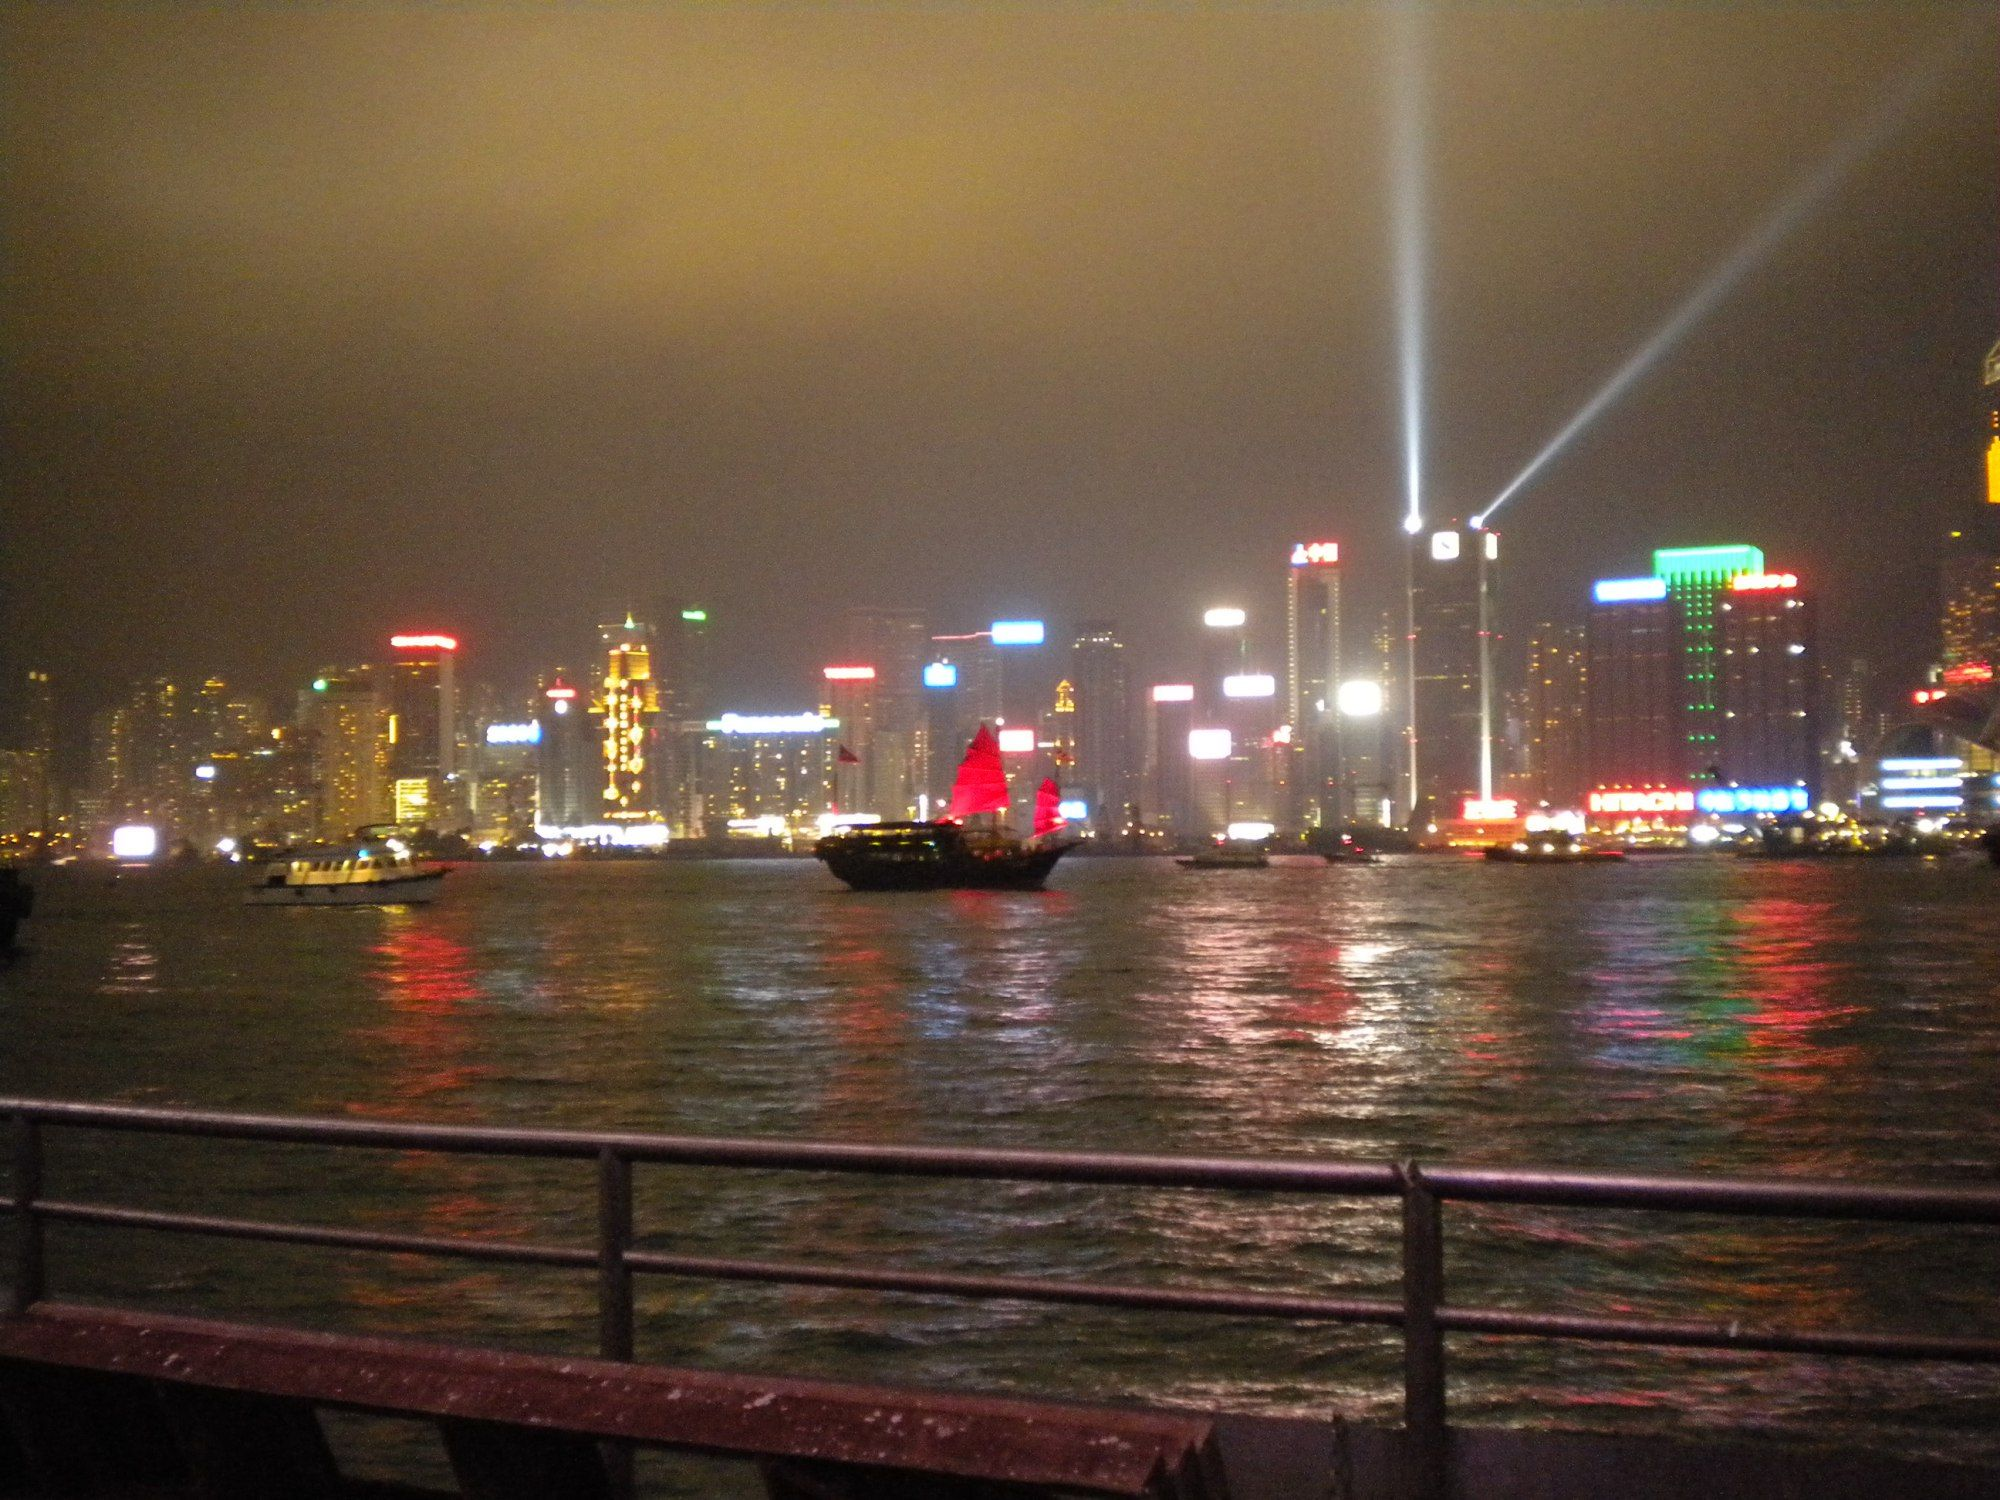 I will definately be spending more time in Hong Kong this time around